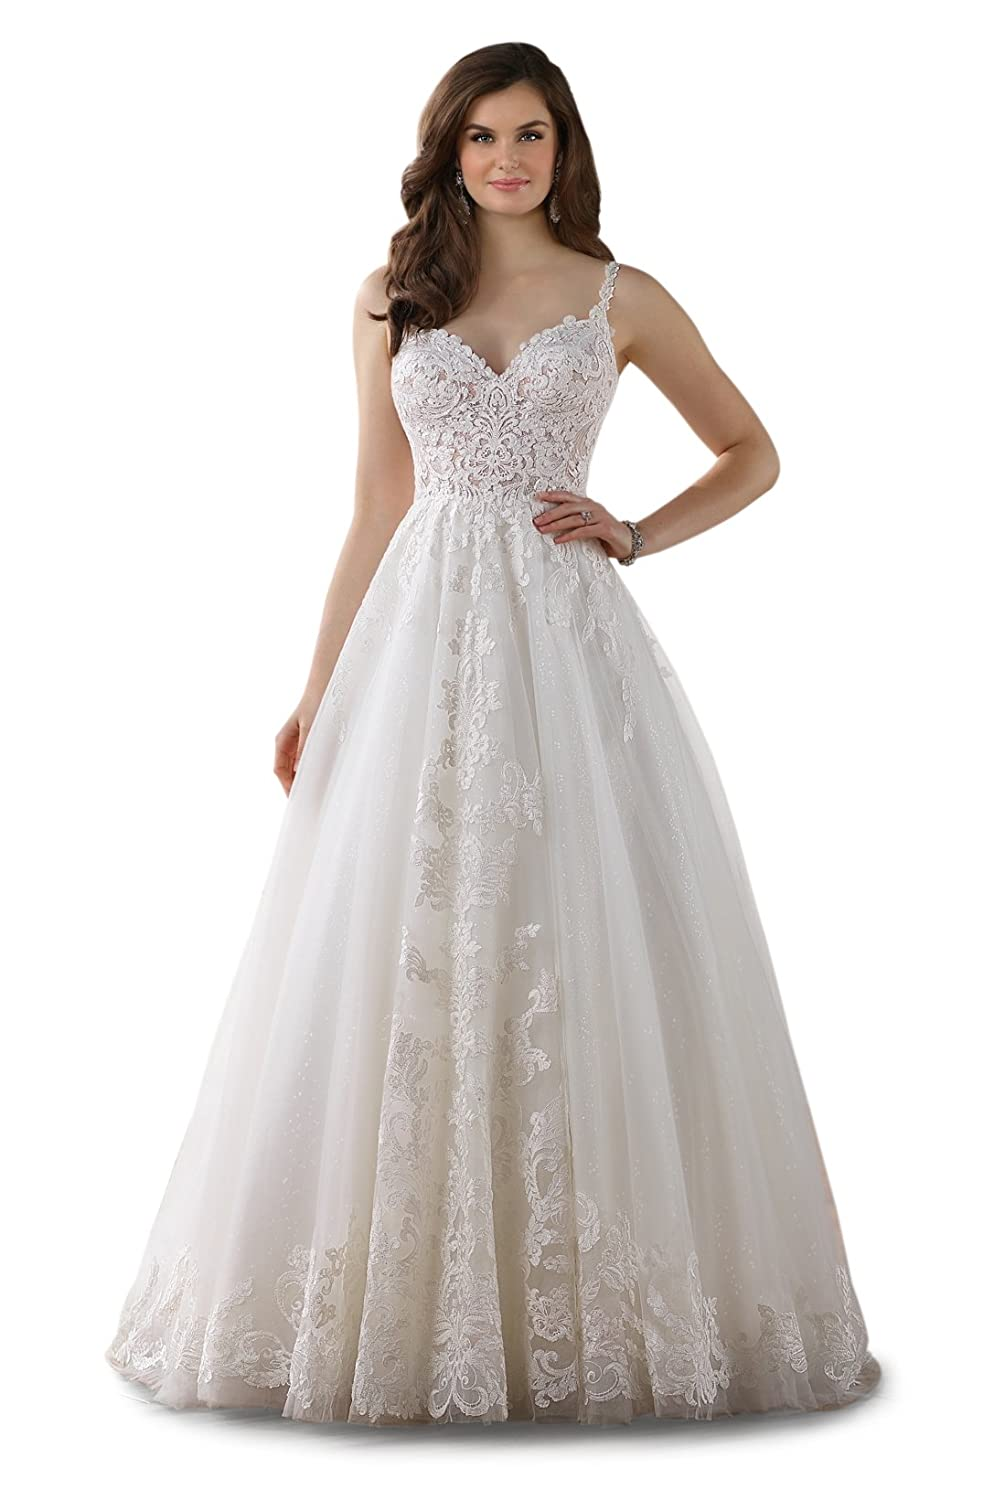 53f0a560d781 Doramei Women s Strap Backless Lace Appliques Court Train Spring 2018  Wedding Dress at Amazon Women s Clothing store